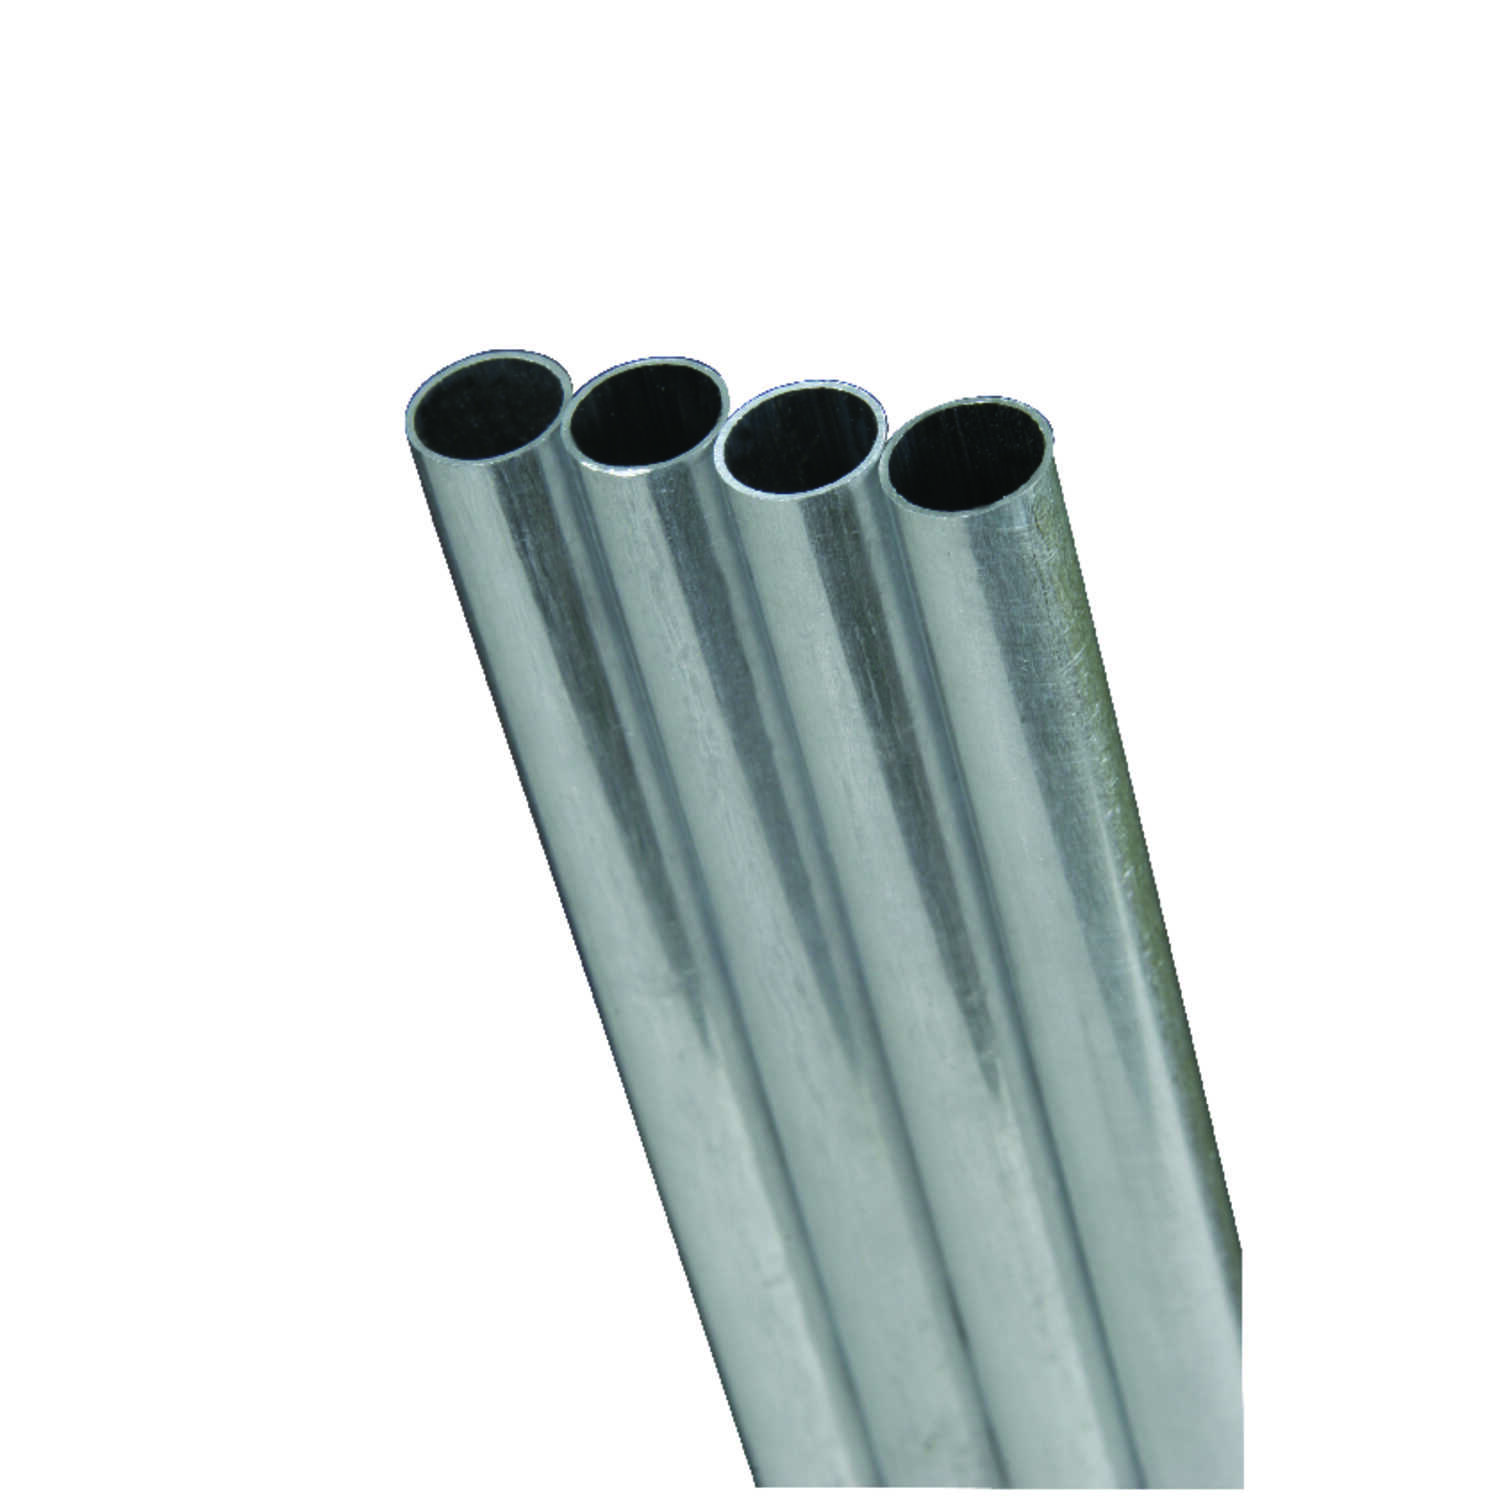 K&S  1/2 in. Dia. x 1 ft. L Stainless Steel Tube  1 each